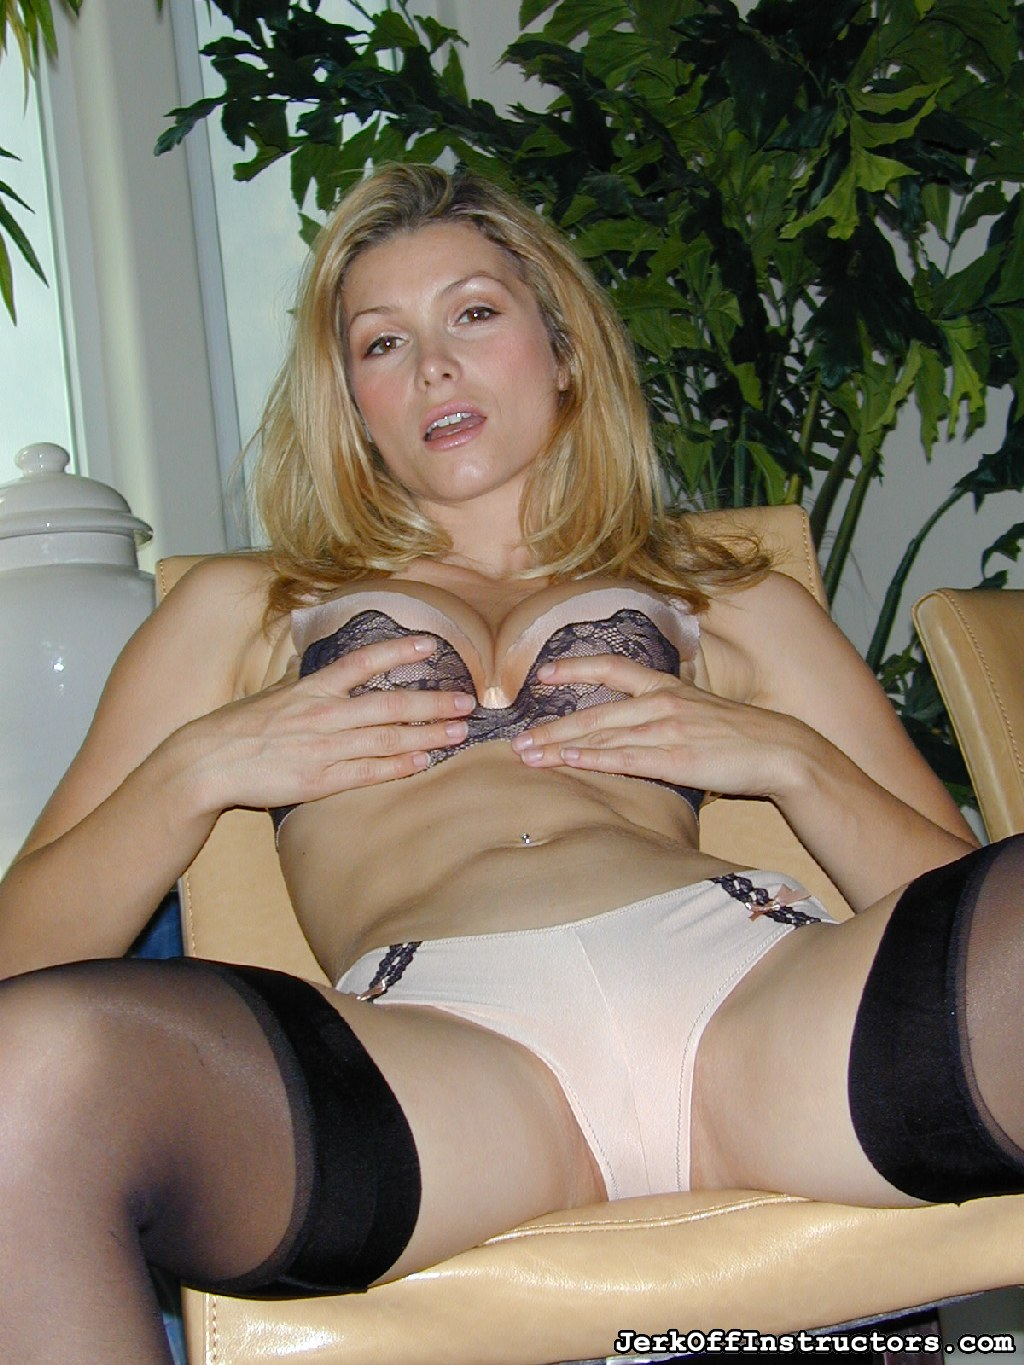 Nude bra  panties  in tan nylon bikini panties and bra with black thigh highs heather vandeven keeps you elegant by bending over and standing over you  she wants you to get a pretty look at what she brought you. In tan nylon bikini panties and bra with black thigh highs, Heather Vandeven keeps you rough by bending over and standing over you. She wants you to get a beautiful look at what she brought you.